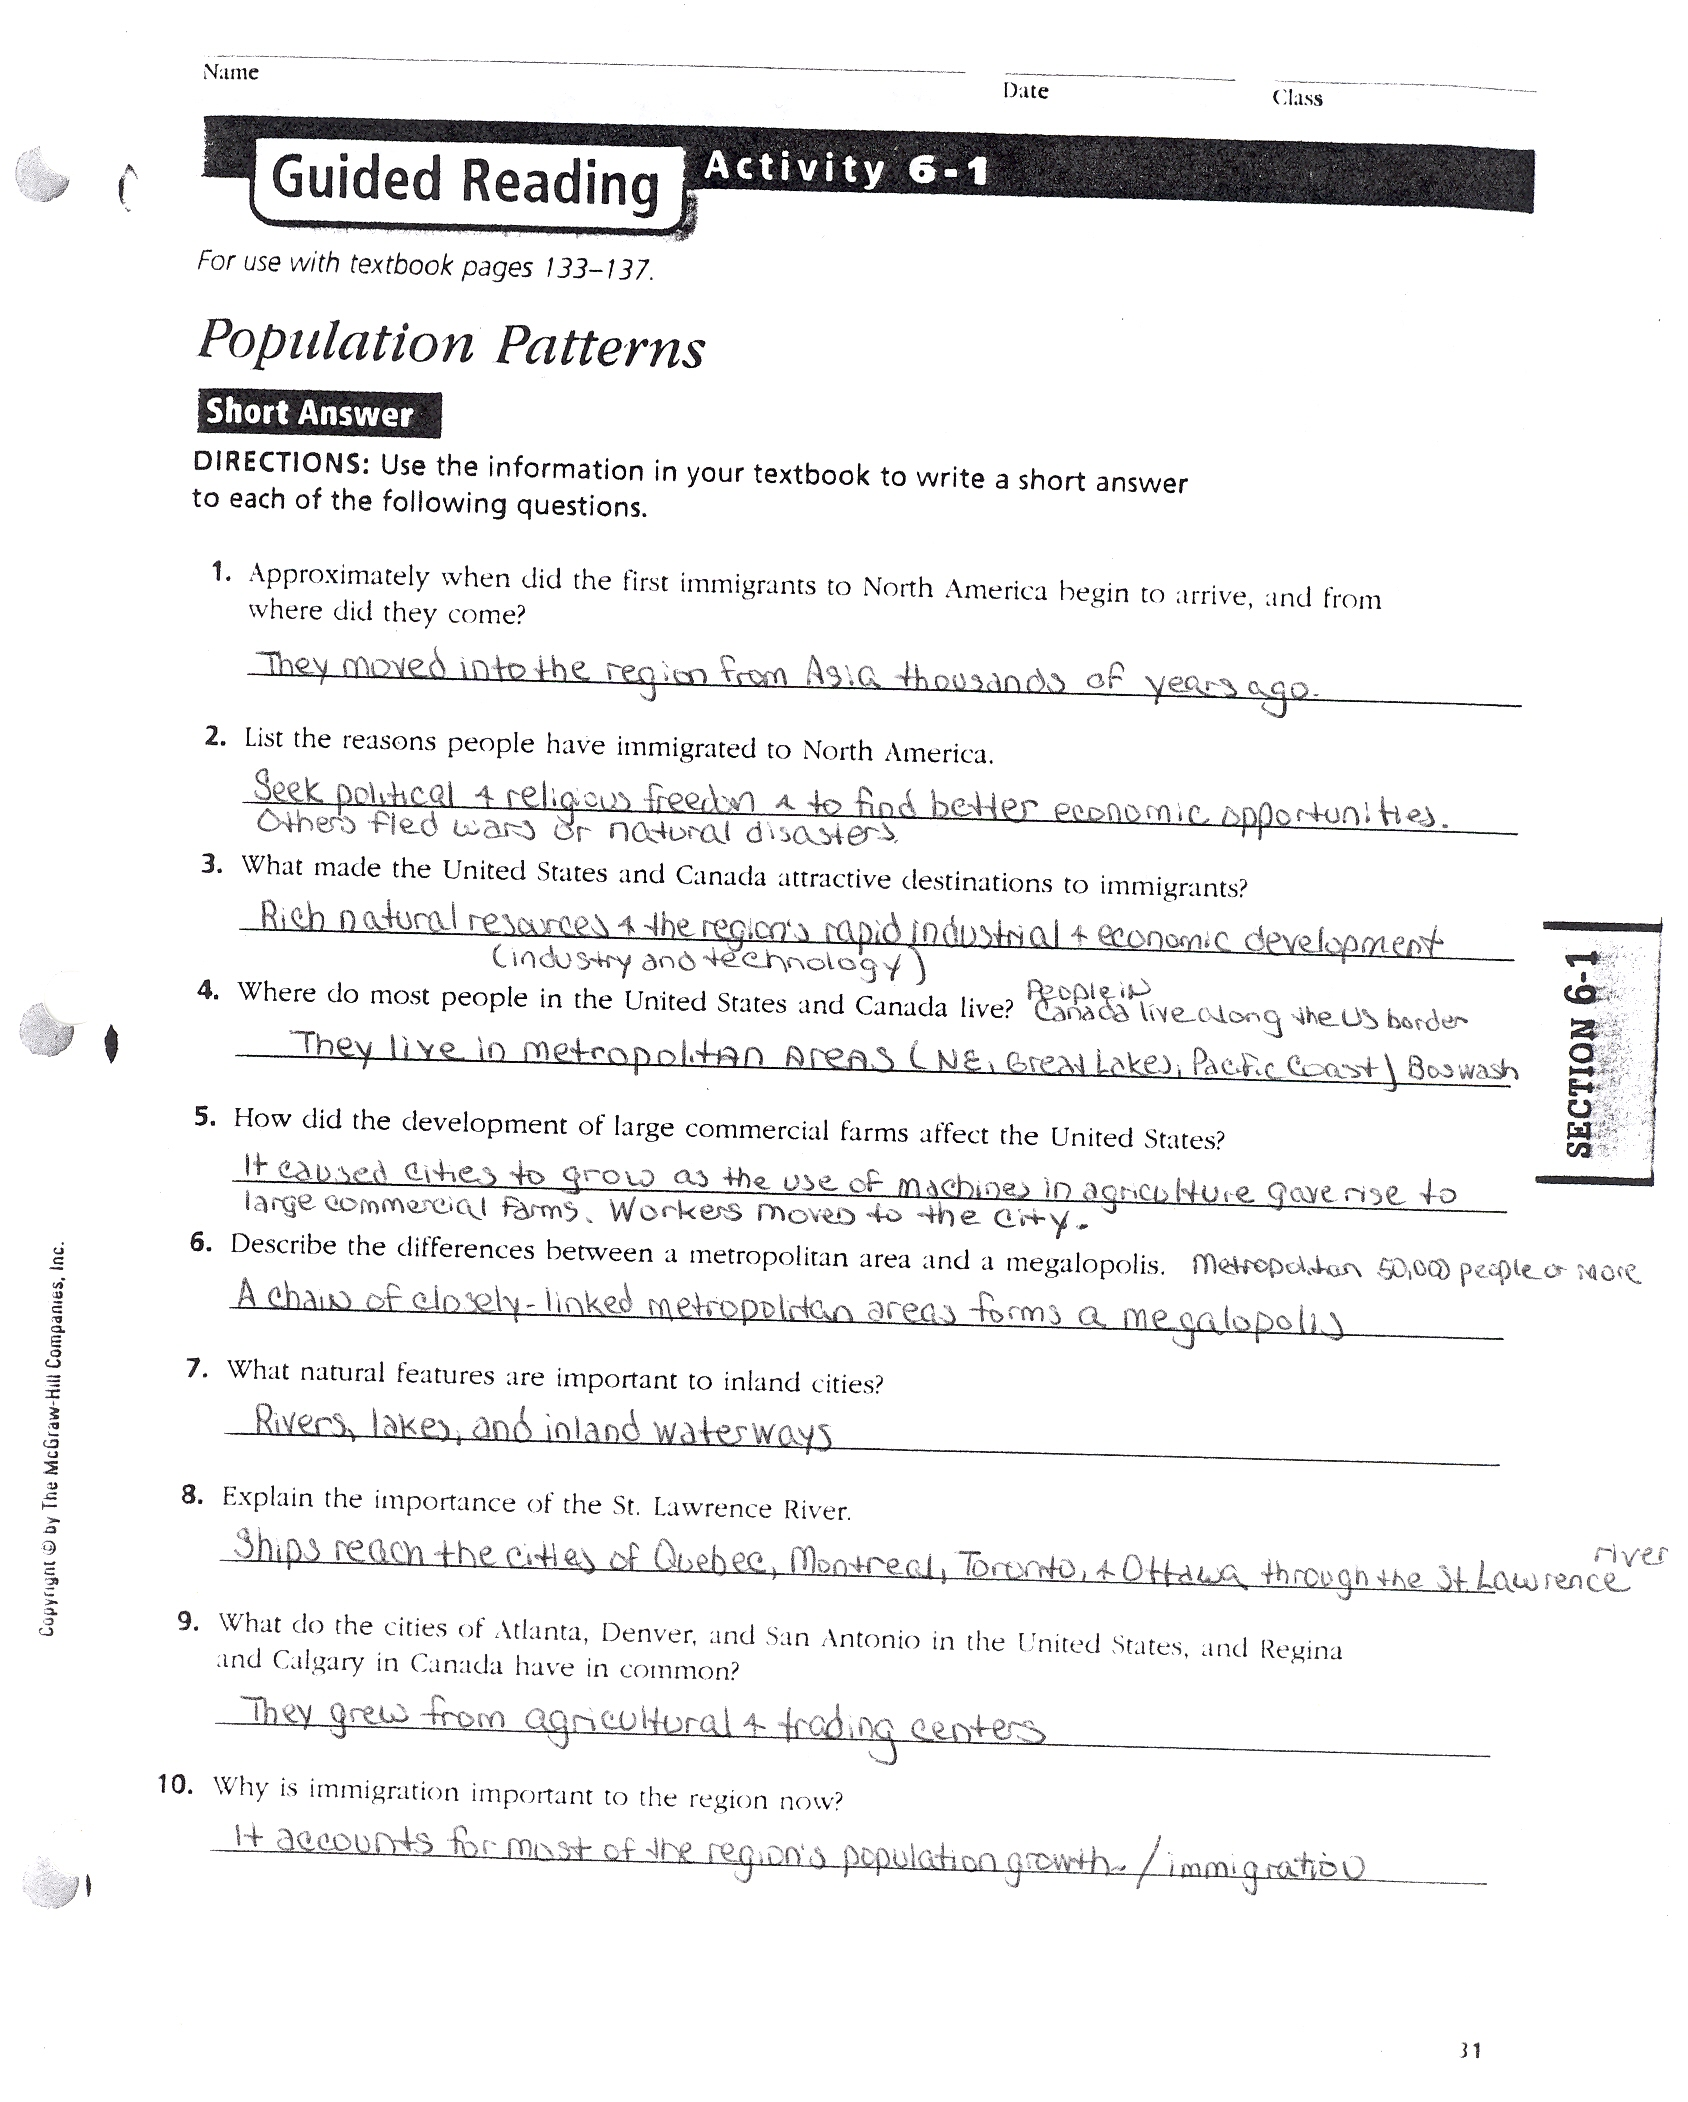 world history world geography rh acedwardslobos86 com Fun Geography Worksheets Five Themes of Geography